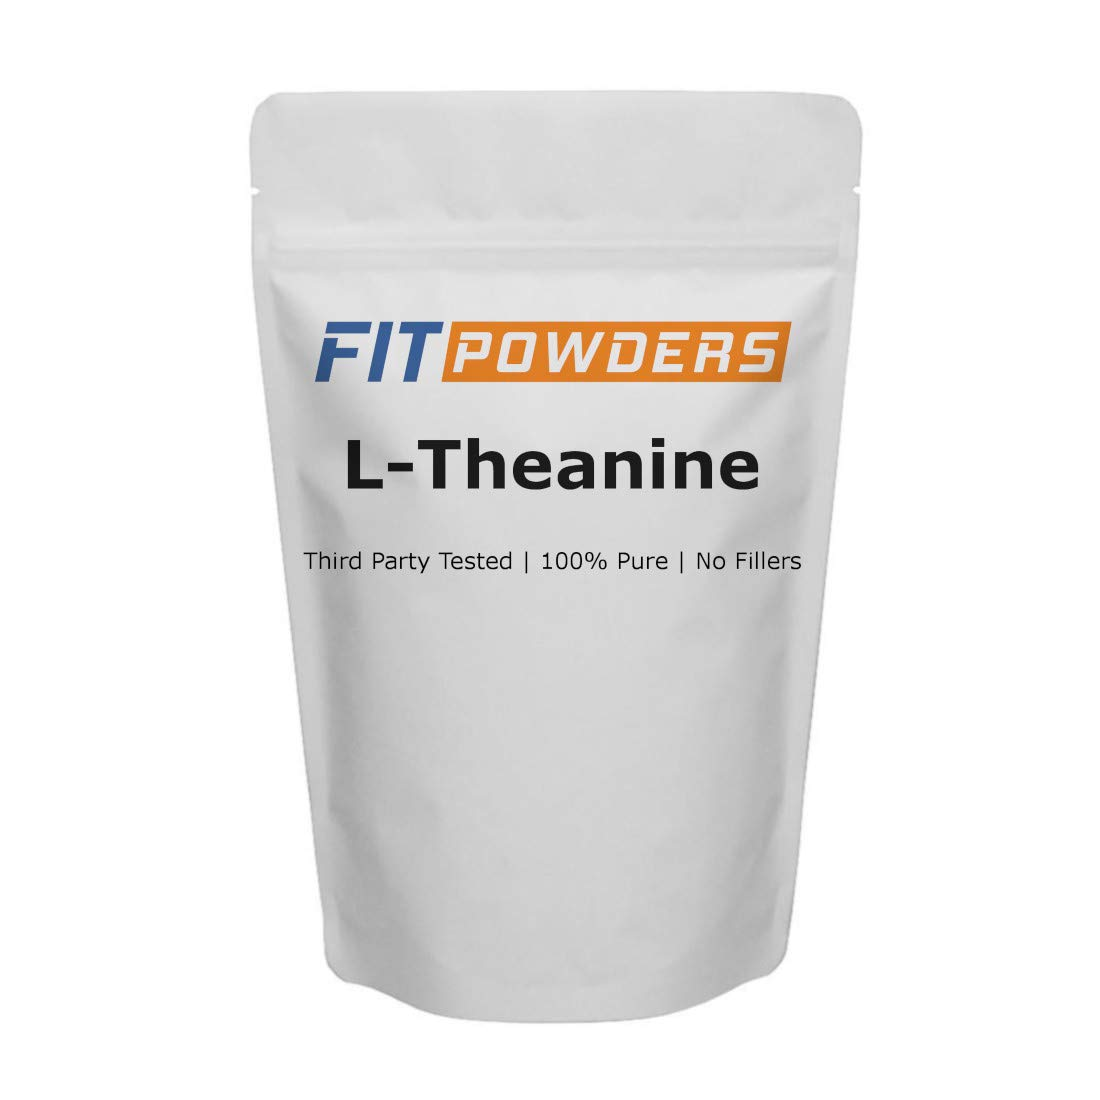 L-Theanine Powder 100g (500 Day Supply) 100% Pure, Non-GMO, Gluten Free, Mood and Cognitive Supplement, Stress Relief and Relaxation - Fit Powders                Pure Science L-Theanine Supplement 400 mg – Supports Cognition, Improves Mental Performance and Calms the mind and Reduce stress - 50 Vegetarian Capsules